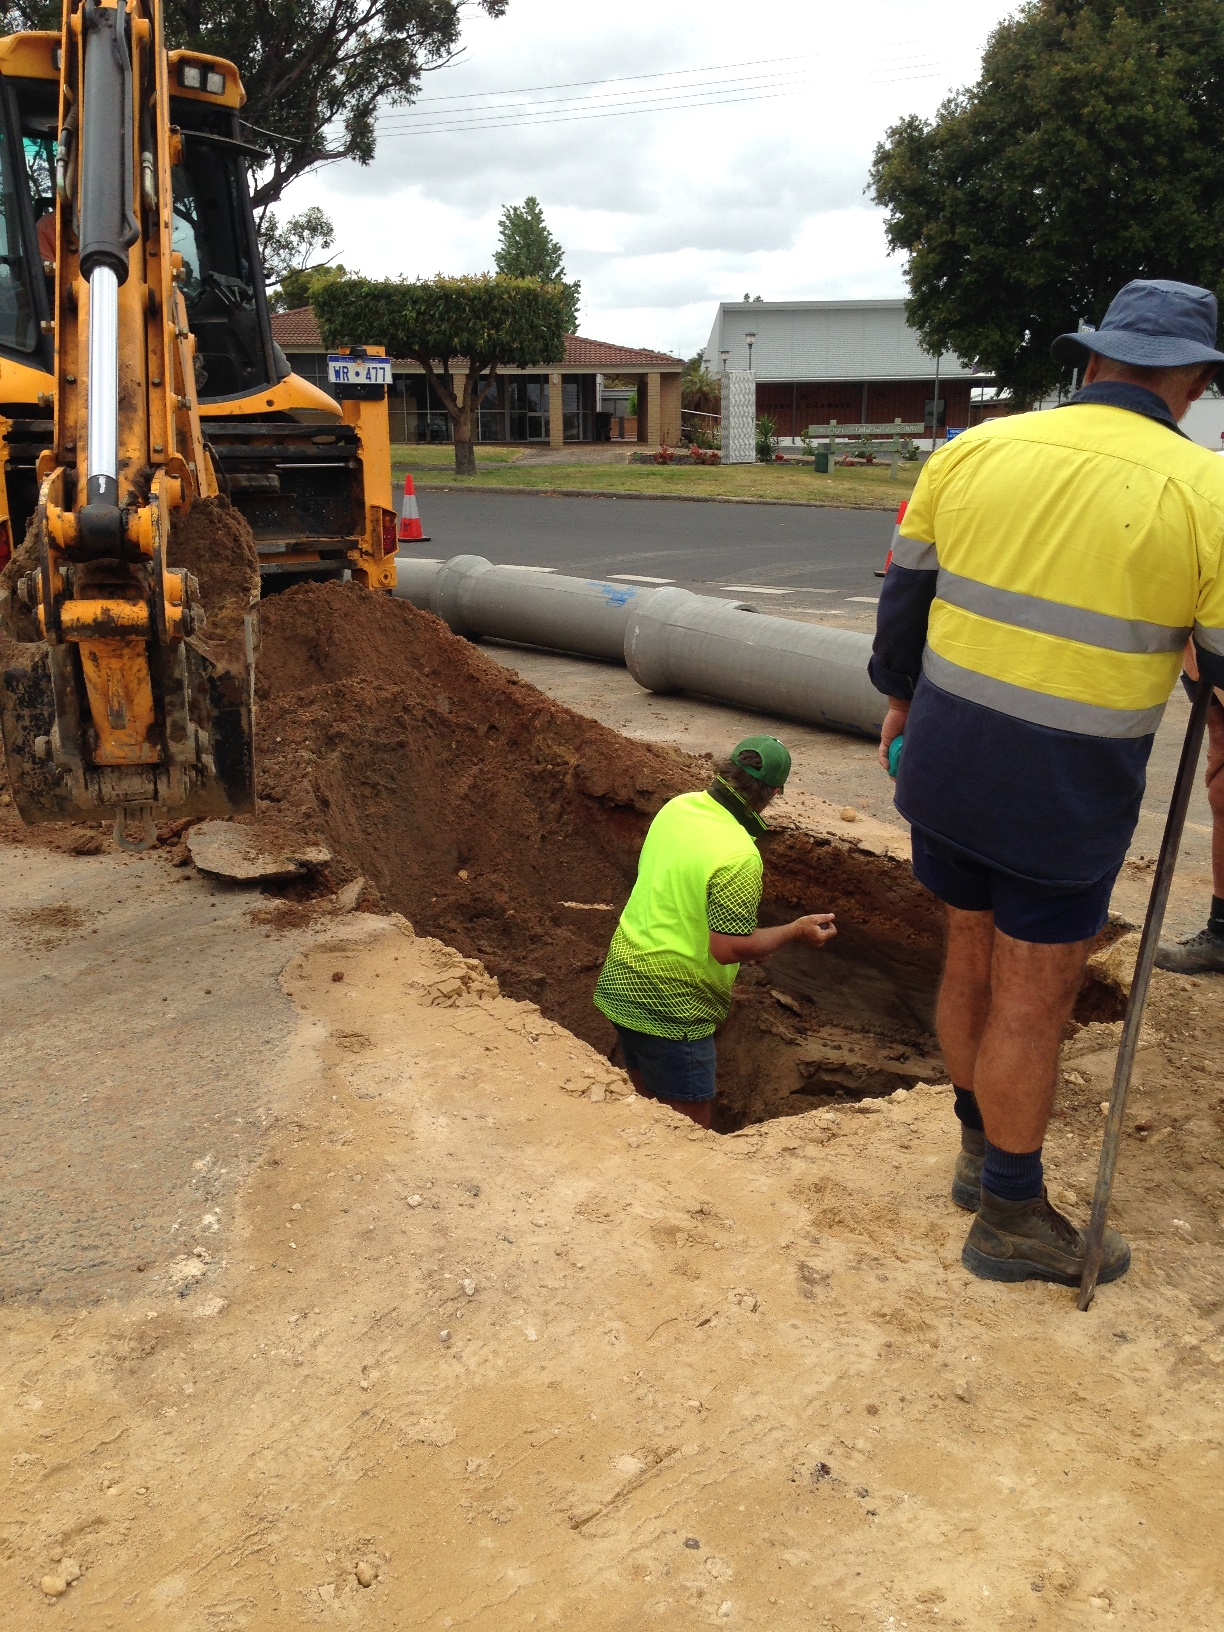 Laying new drainage pipes